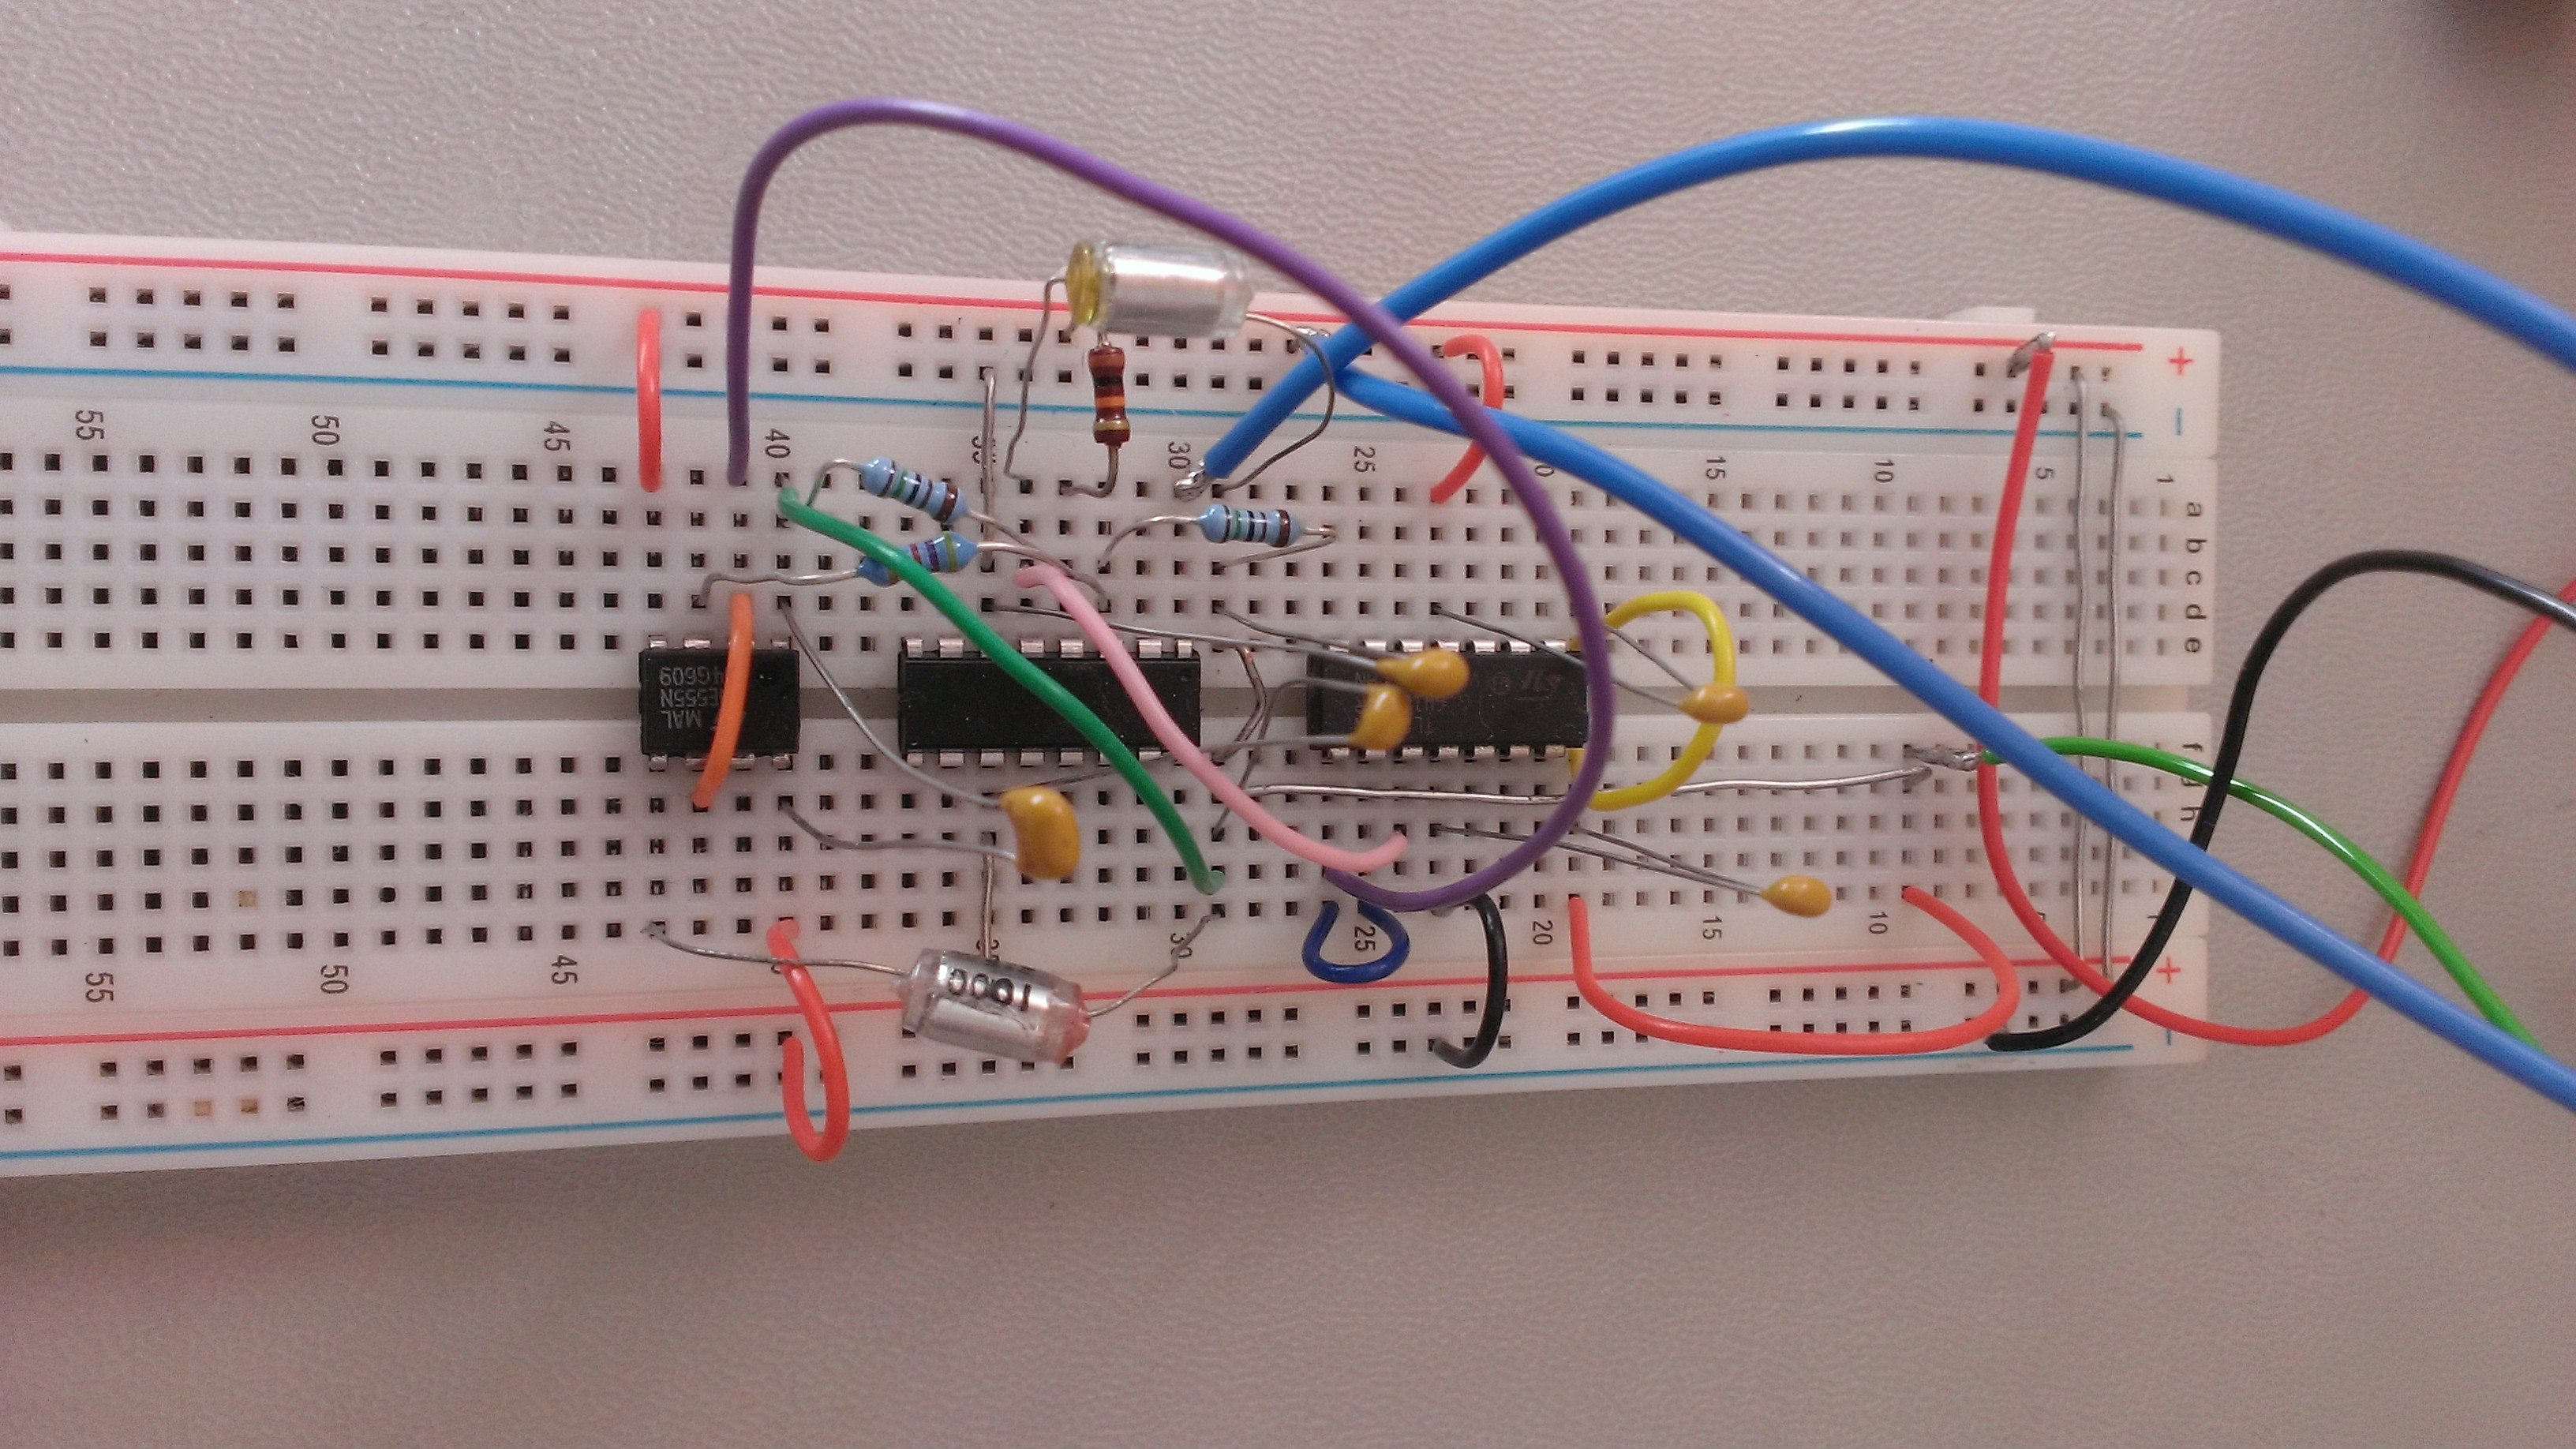 Voltage Controlled Oscillator Based On The Cmos 555 Timer Voltagecontrolled Thomas Henry Vco Basic Core Breadboard